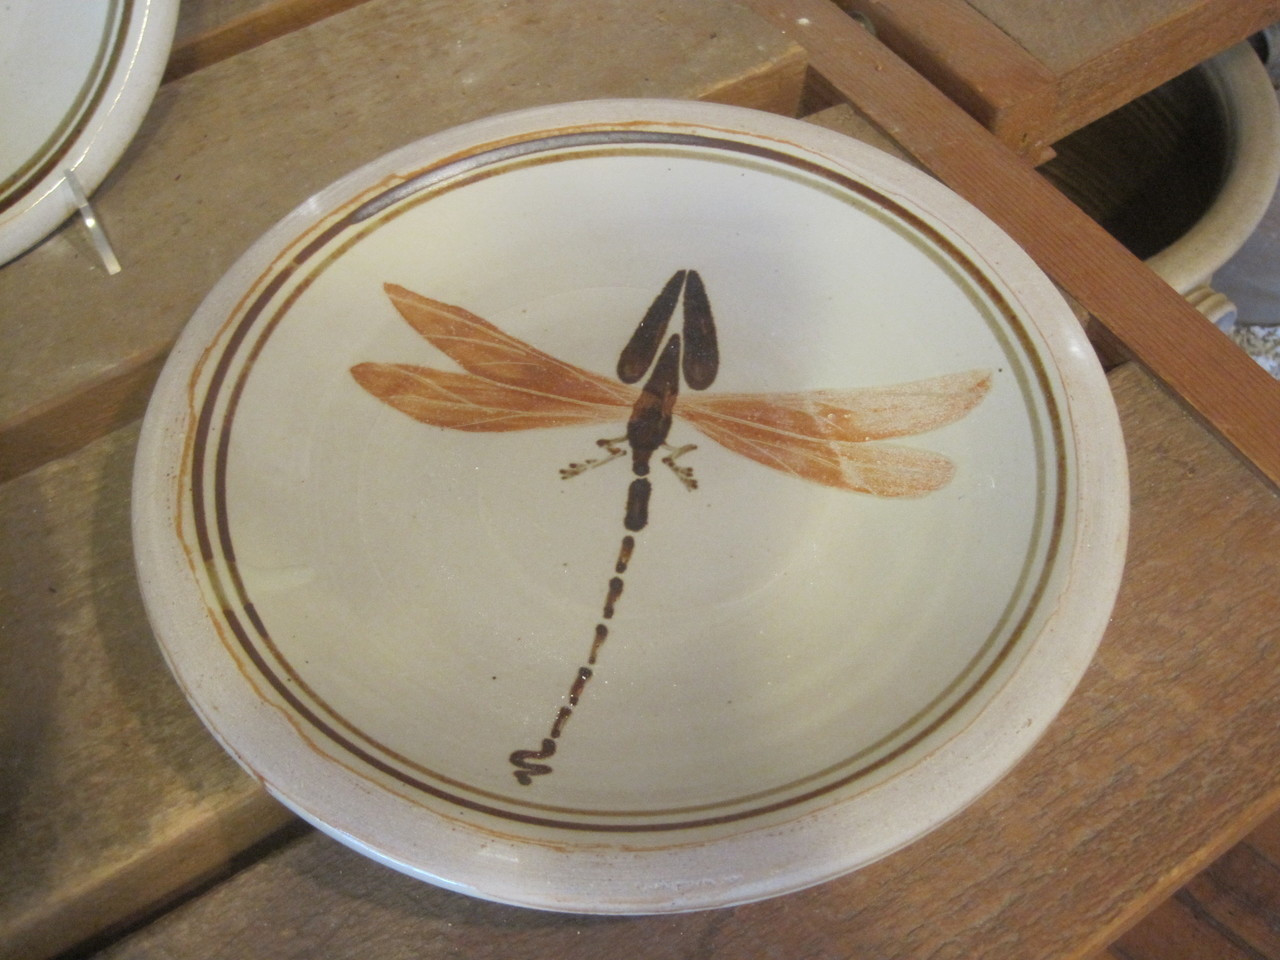 Dragon Fly Motif for the Flatware-Dinner Plate-$30